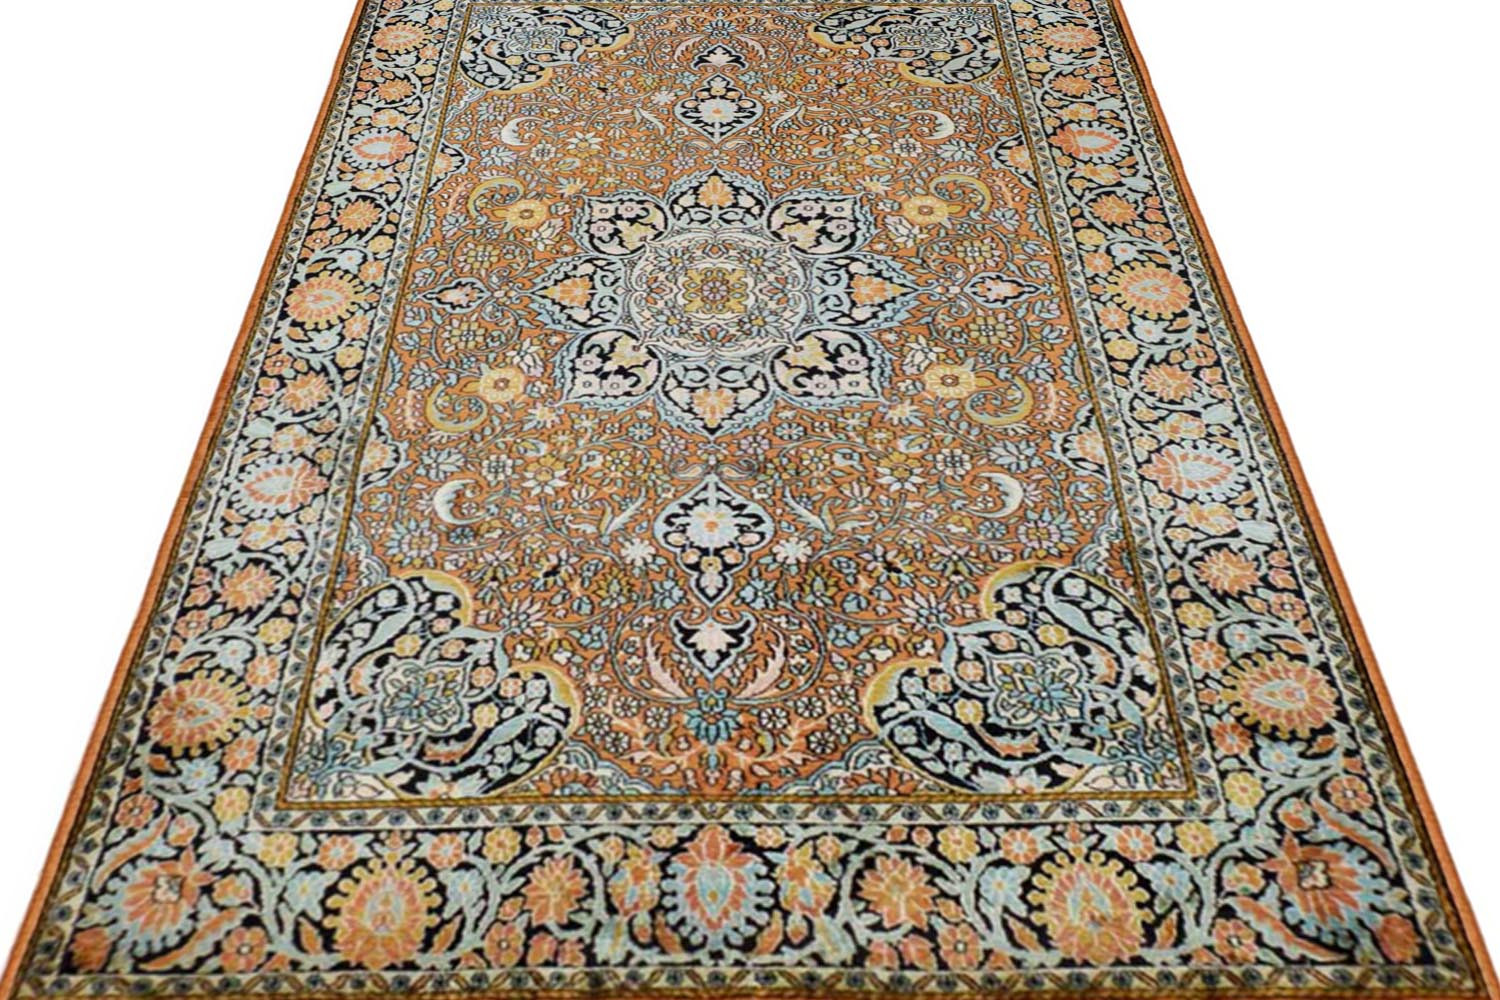 4 X 6 Gold Coin Kashan Silk Rug In Ivory Color At Rugs And